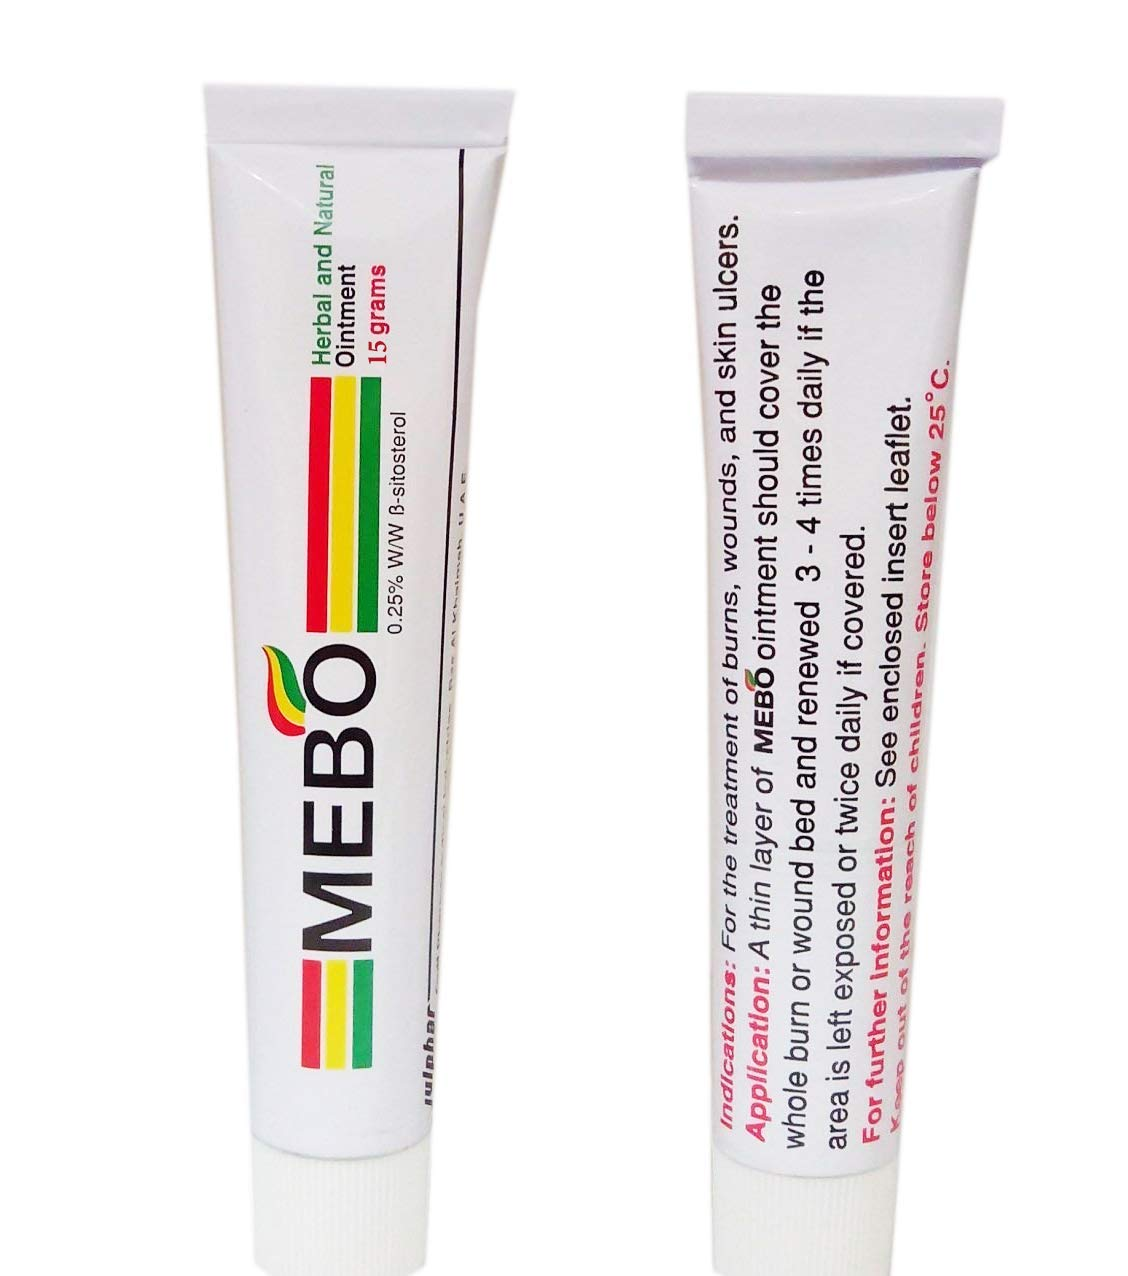 Pack of 3 MEBO Burn Fast Pain Relief Healing Cream Leaves No Marks 15 Grams